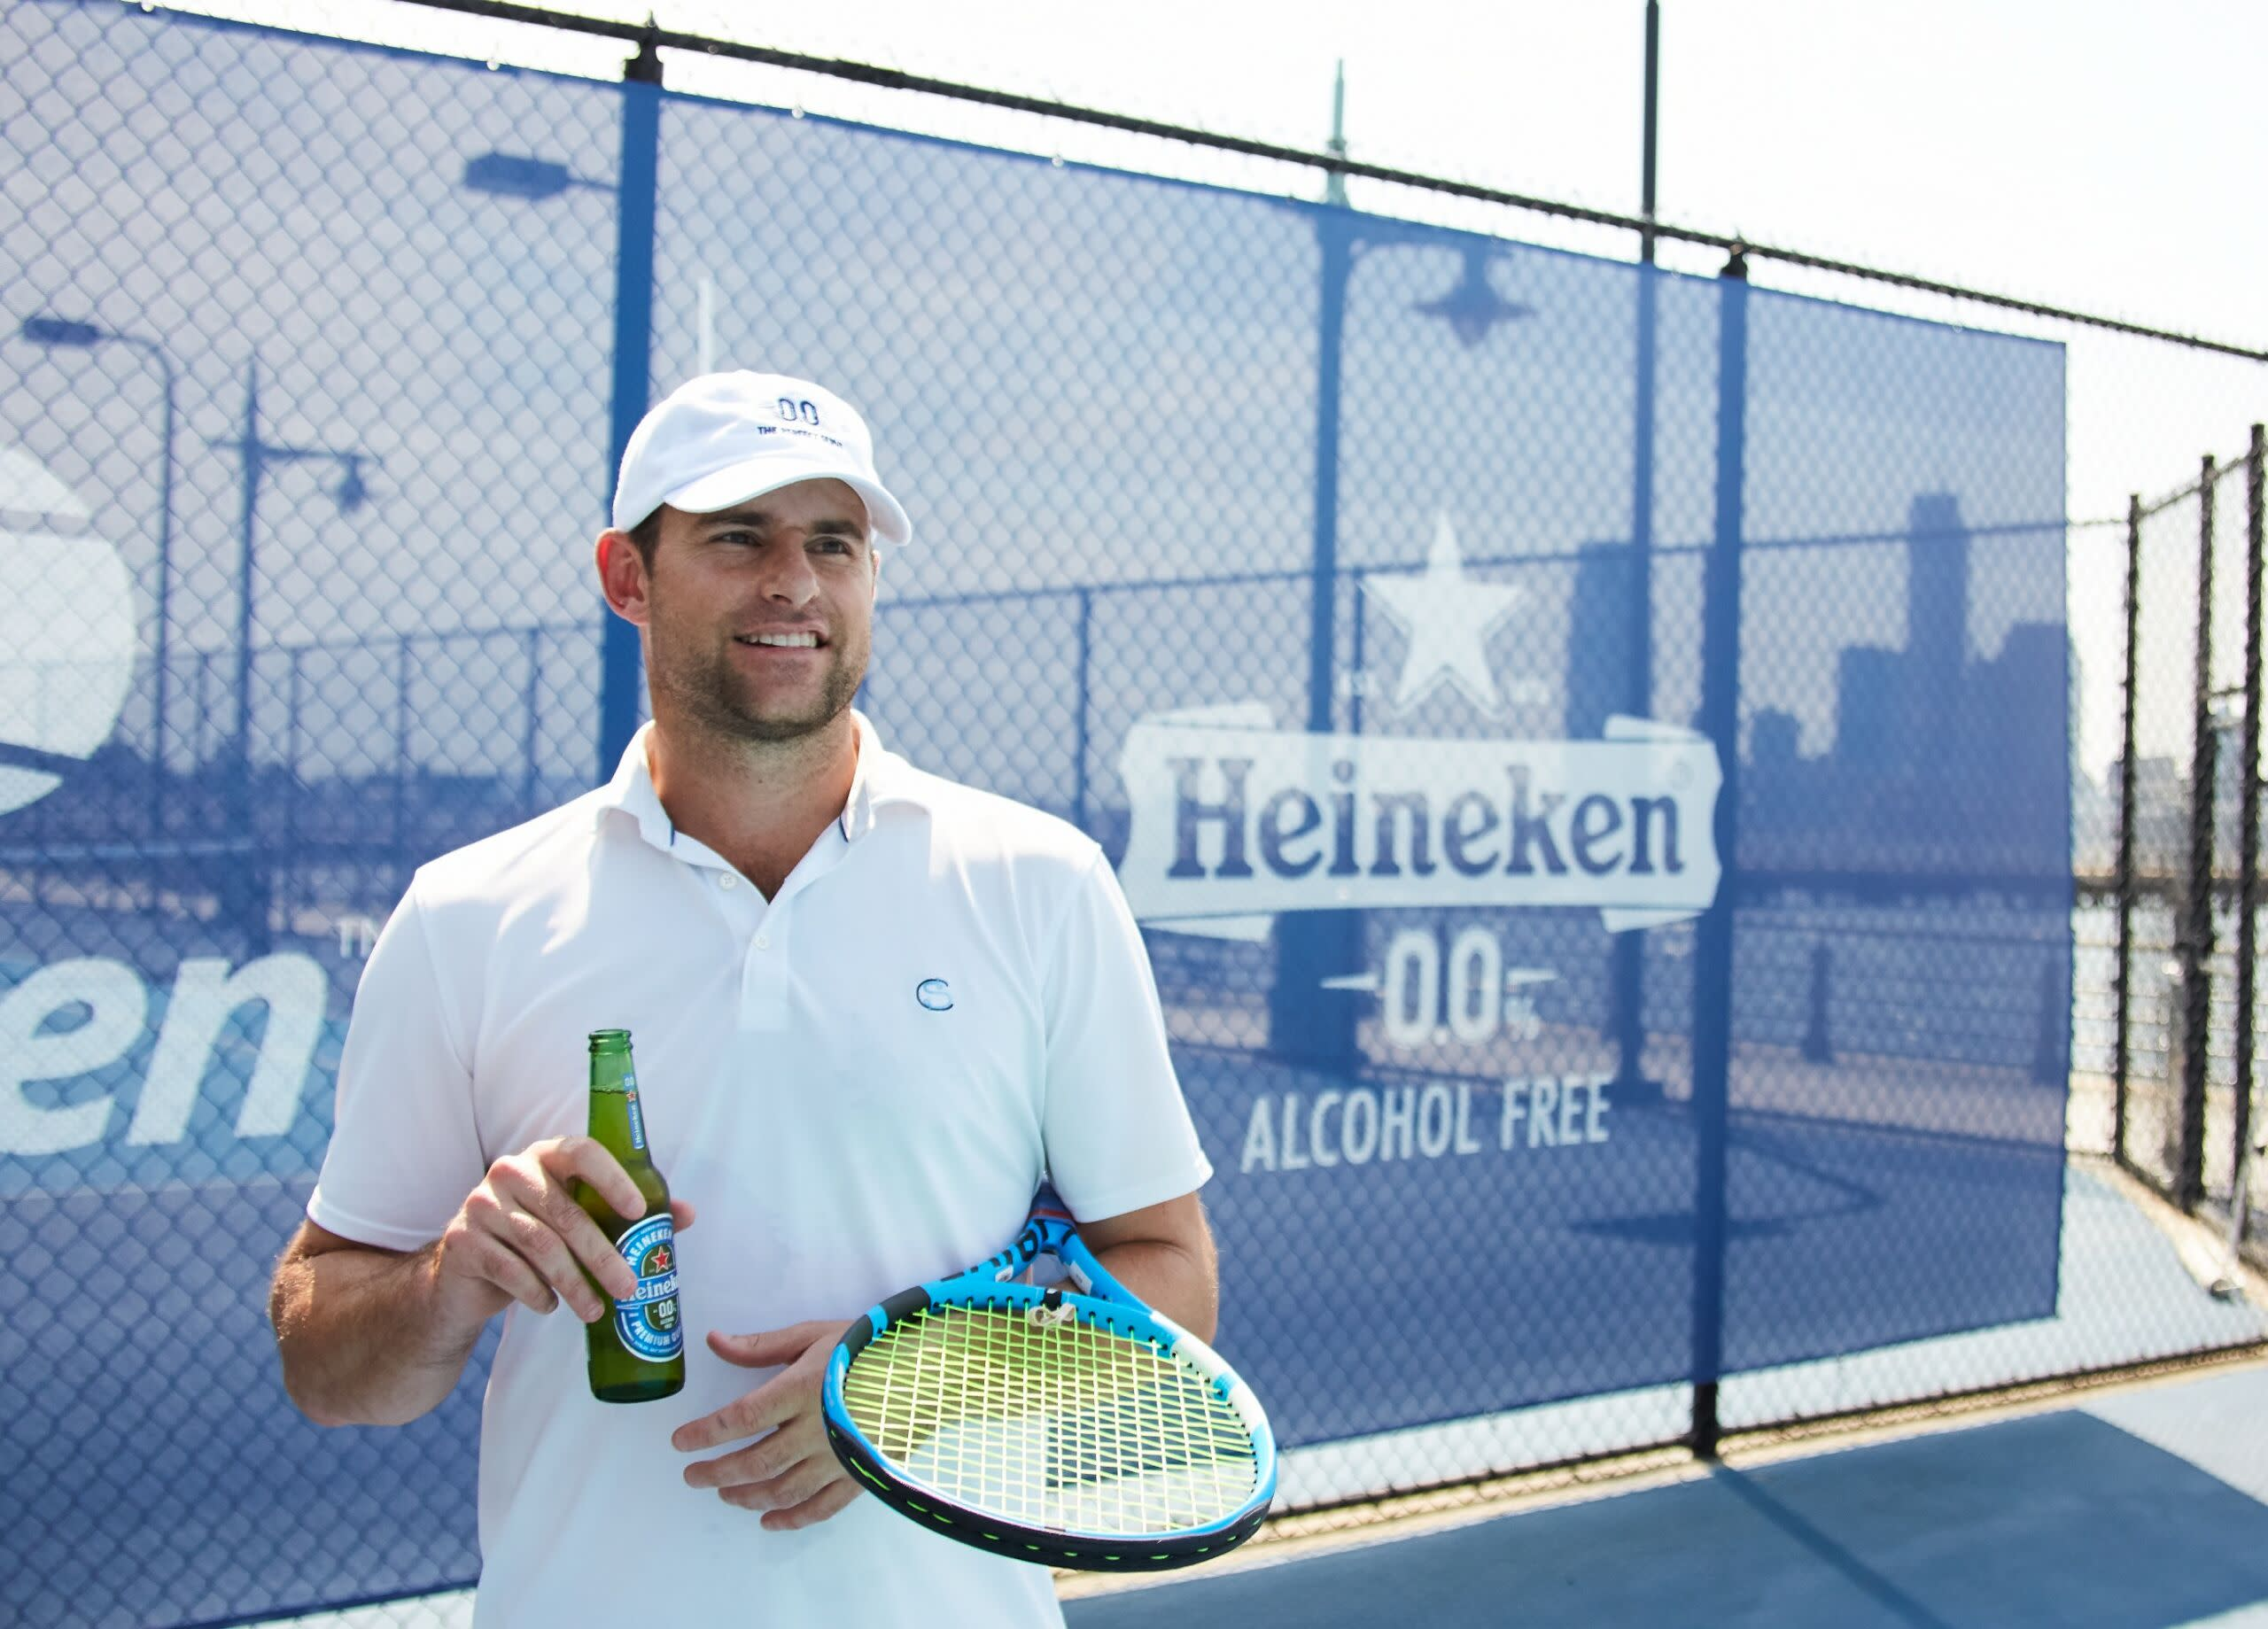 Heineken asks: 'Would you want to have a beer with Andy Roddick?'